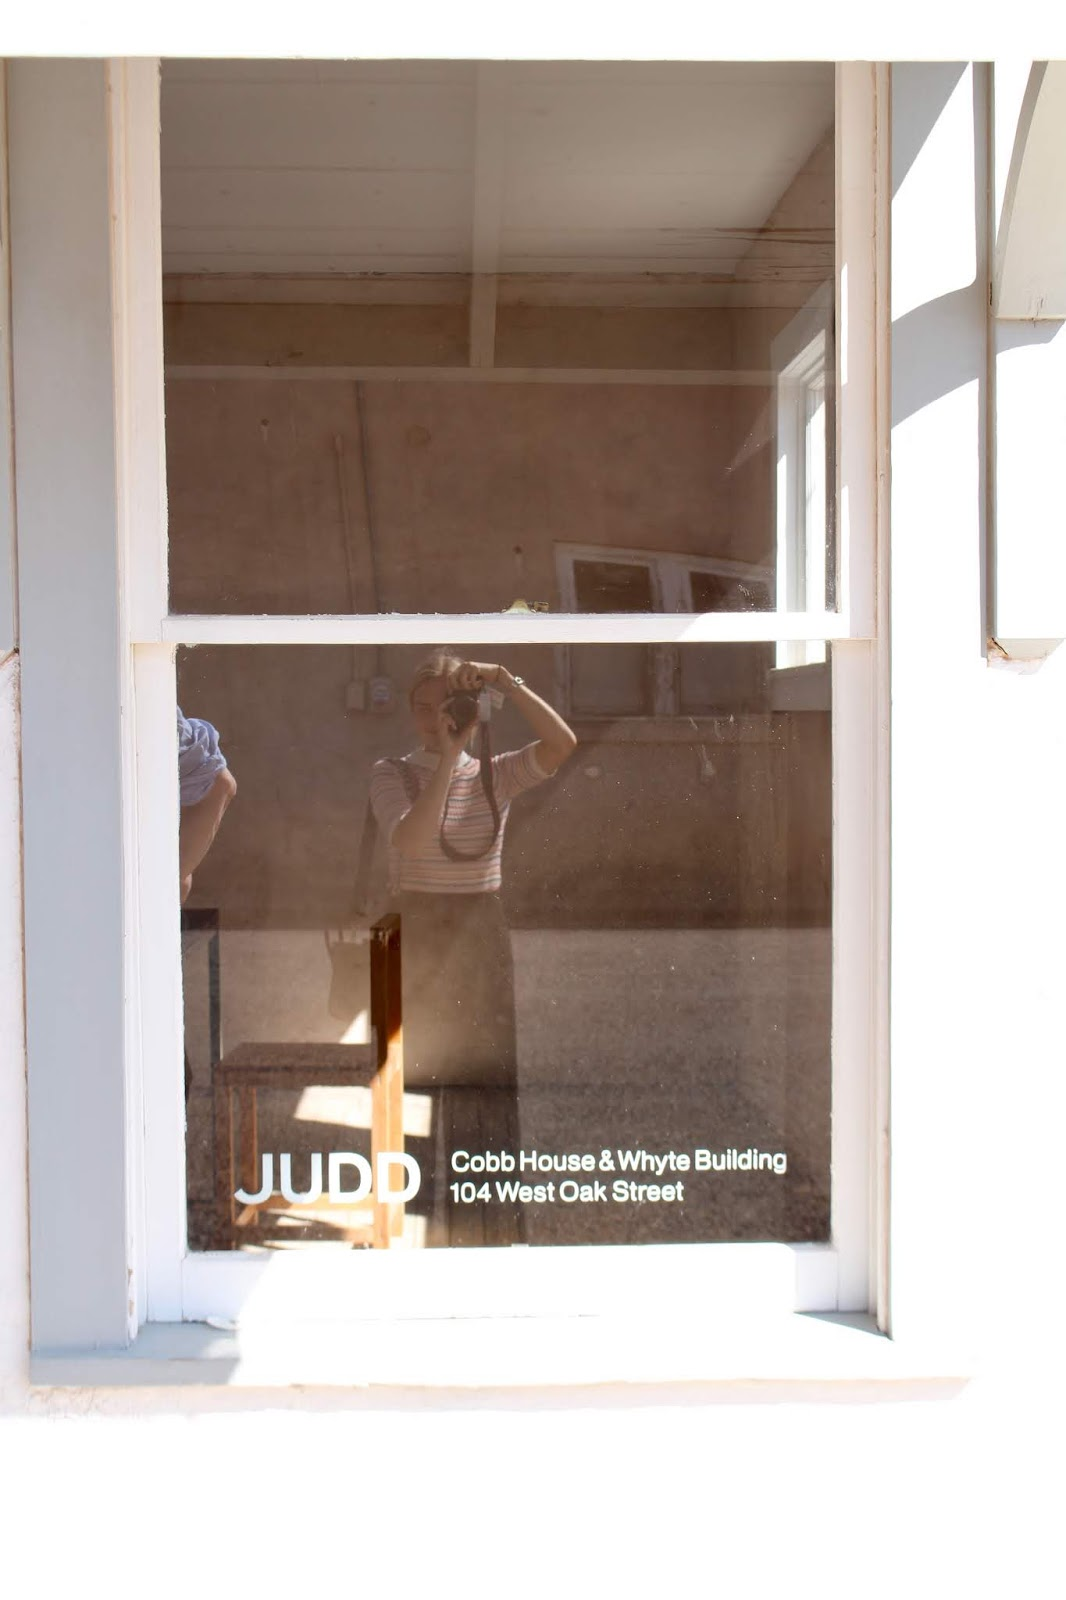 Judd Foundation - The Studios: Architecture Studio, Art Studio, Cobb House & Whyte Building